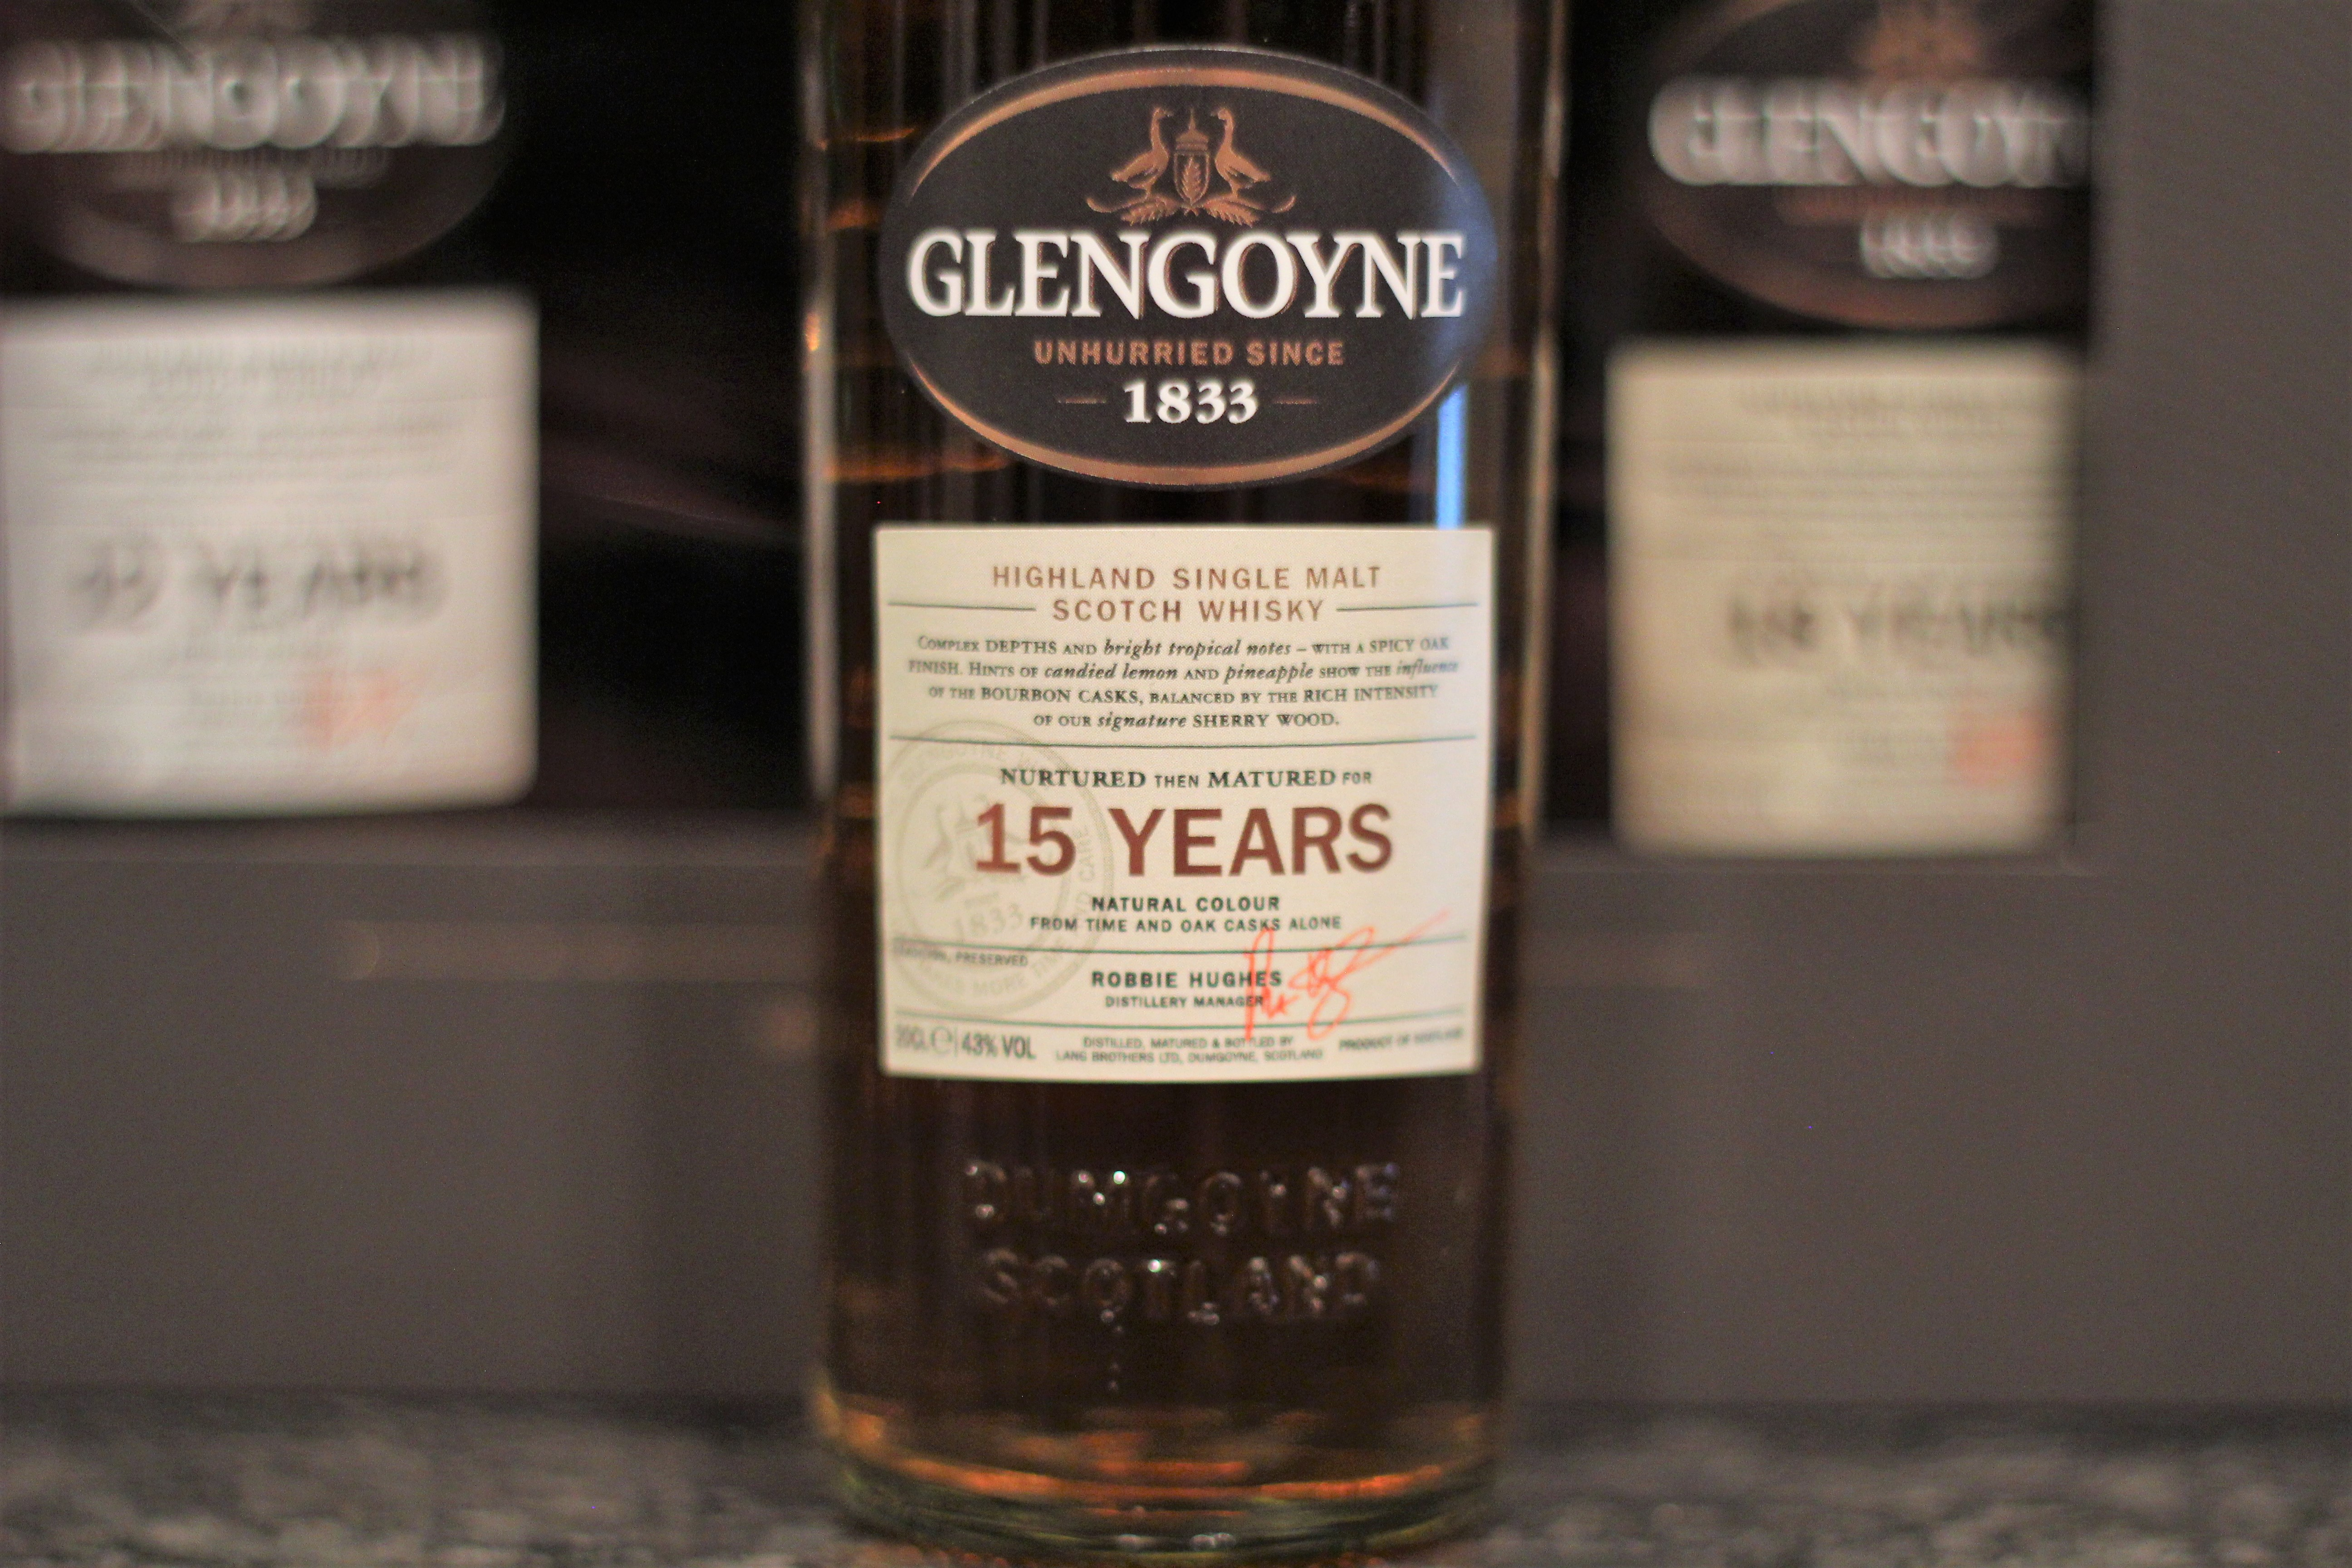 Glengoyne 15y with Dan, Bowick & Steph